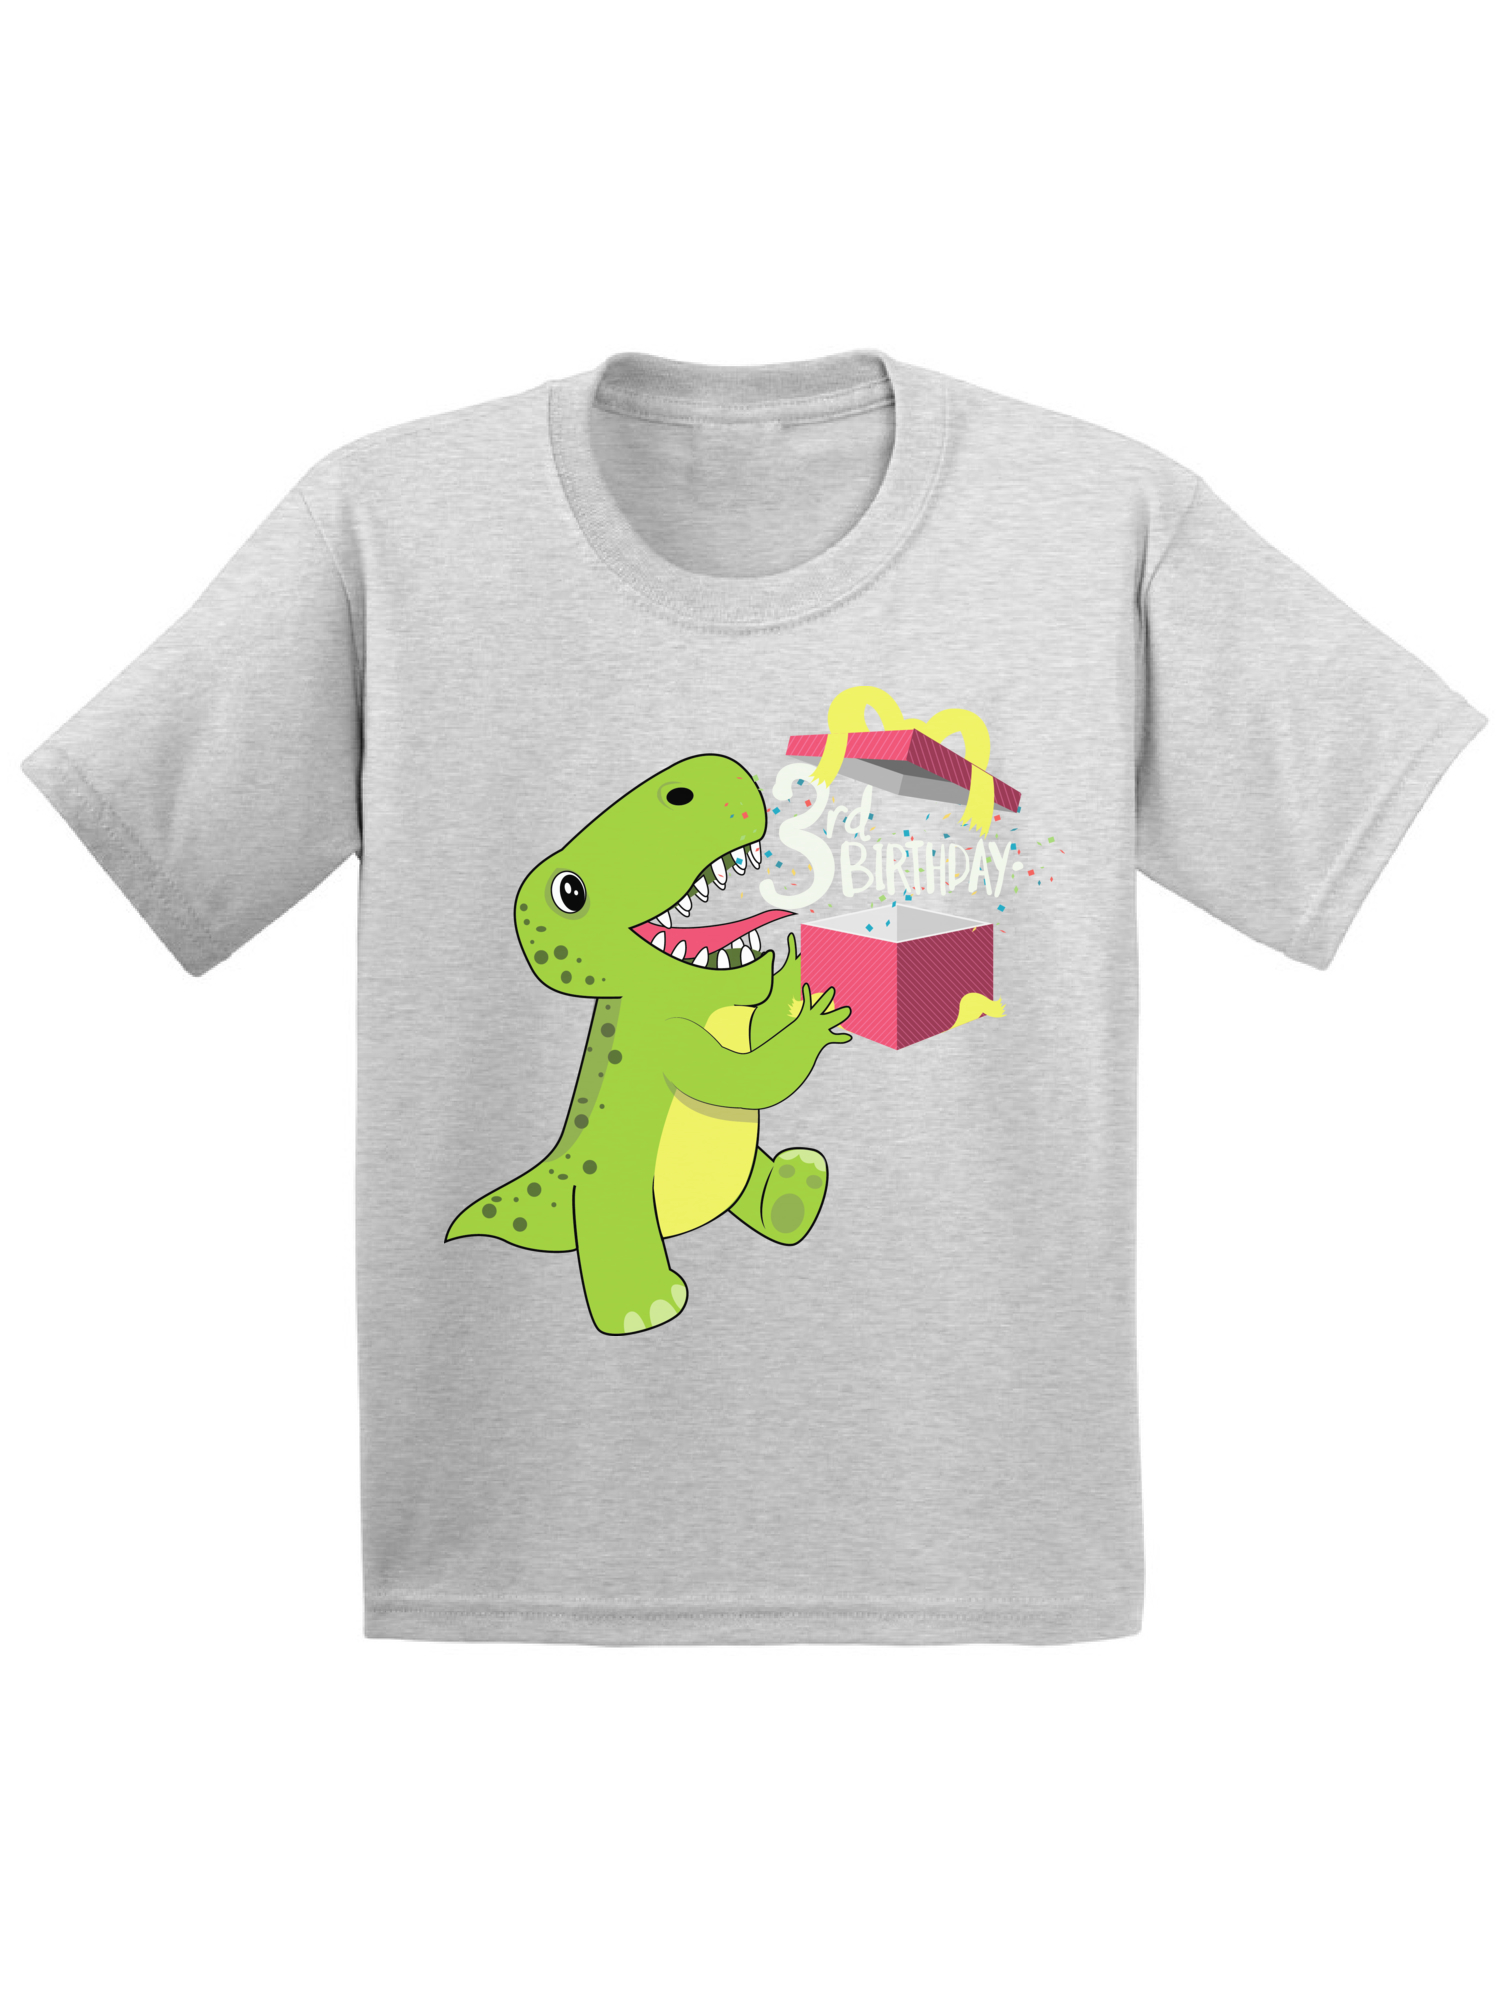 Awkward Styles Dinosaur Birthday Toddler Shirt Gifts for 3 Year Old Birthday Boy Shirt 3rd Birthday Girl Outfit Dinosaur Gifts for Toddler Dinosaur Themed Birthday Party 3rd Birthday Party Shirt